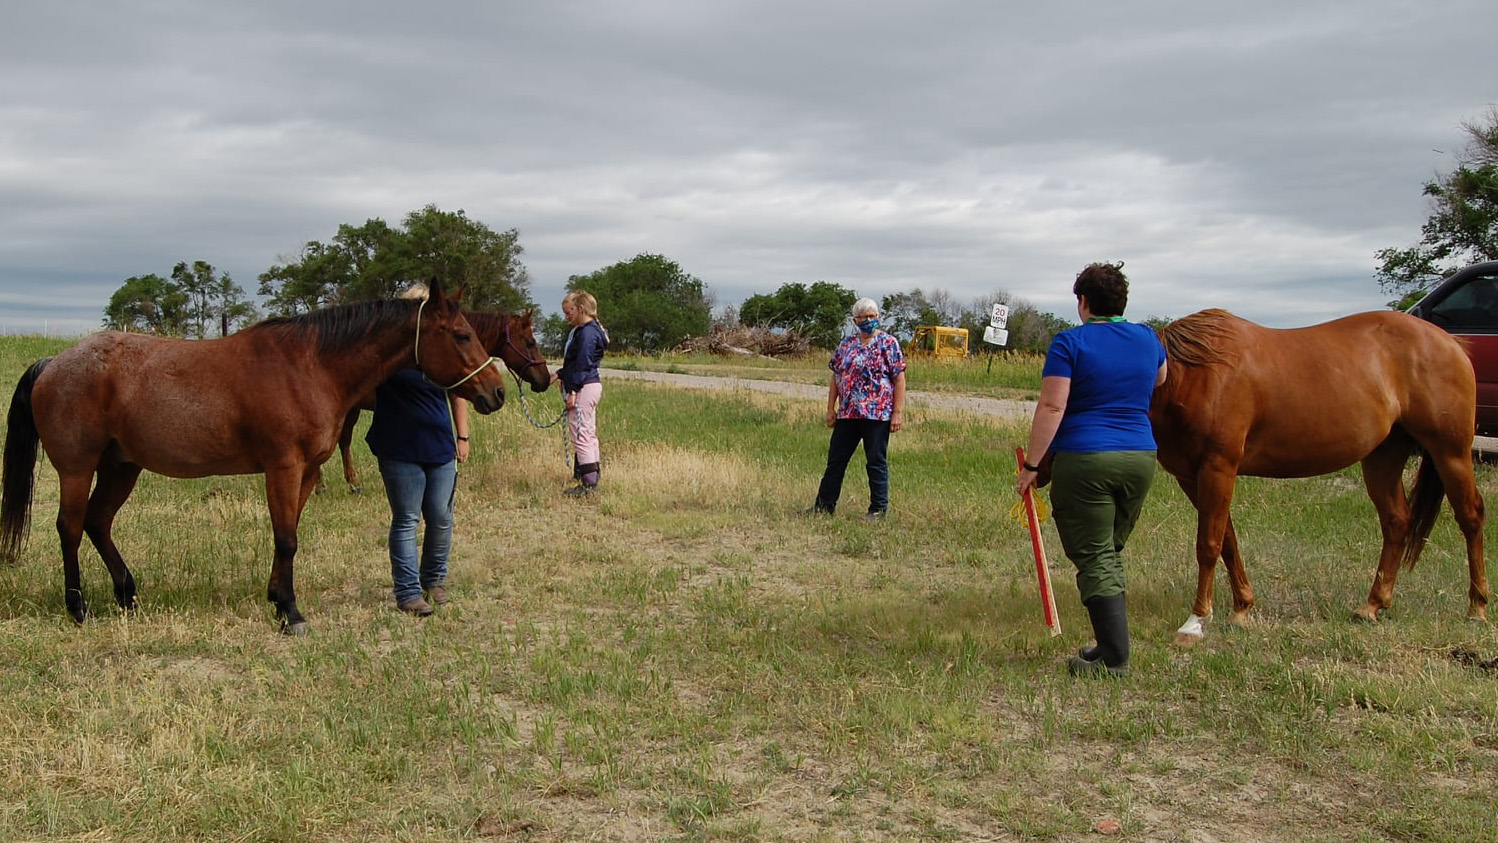 NCTA Vet Tech students have an outdoor lab session on Feeding the Equine Patient. NCTA uses physical distancing and face masks for indoor classes. (C. Barnhart / NCTA Photo)